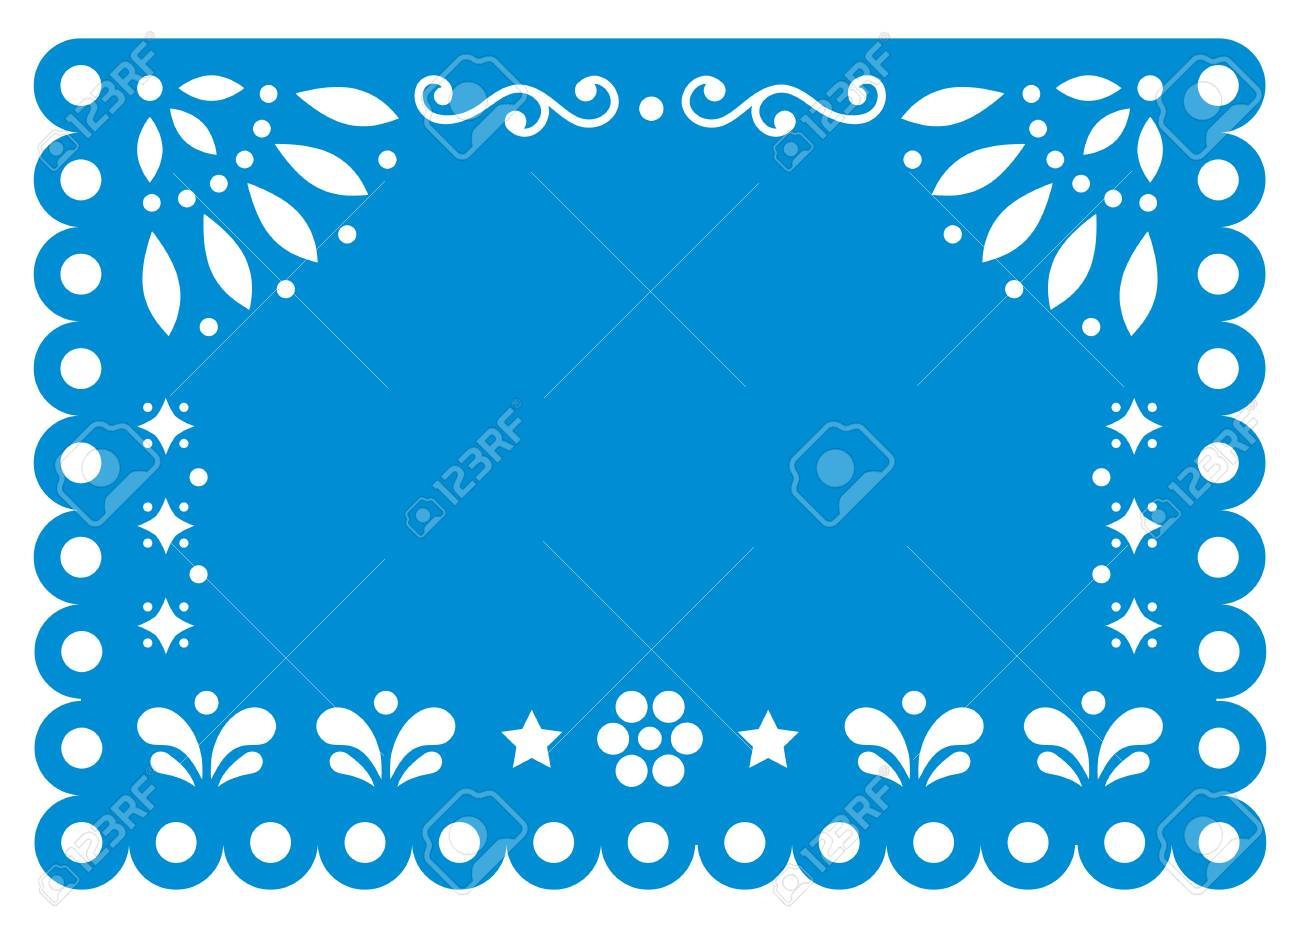 Papel Picado Template Design With Flowers And Geometric Shapes